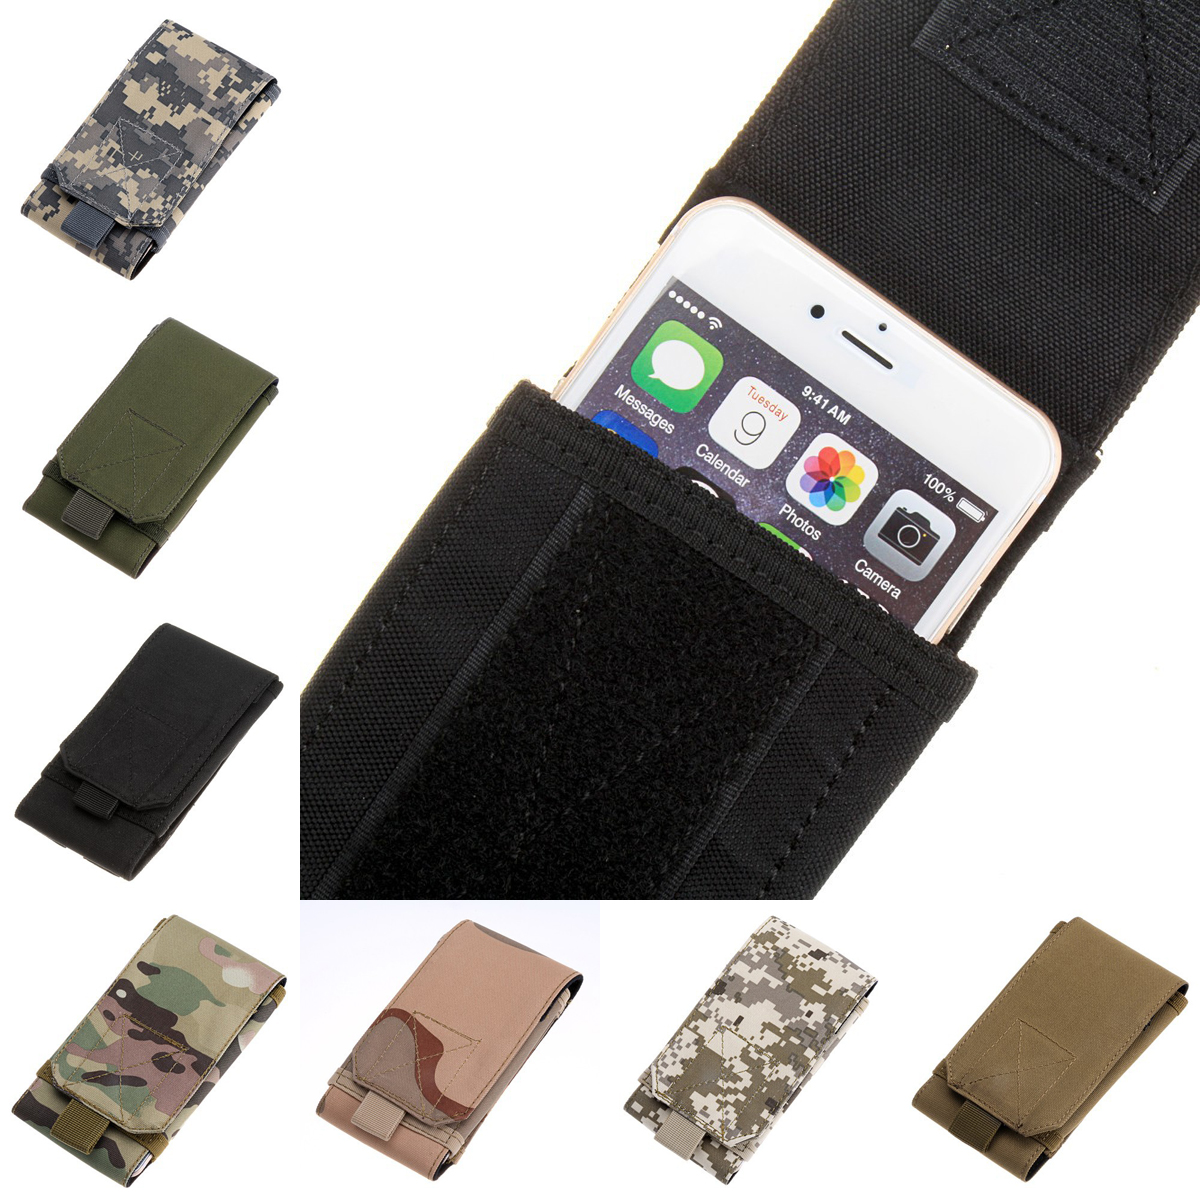 Tactical Molle Outdoor Army Style Hook Loop Belt Pouch  Carry Mobile Phone Cover Case S5 Nylon